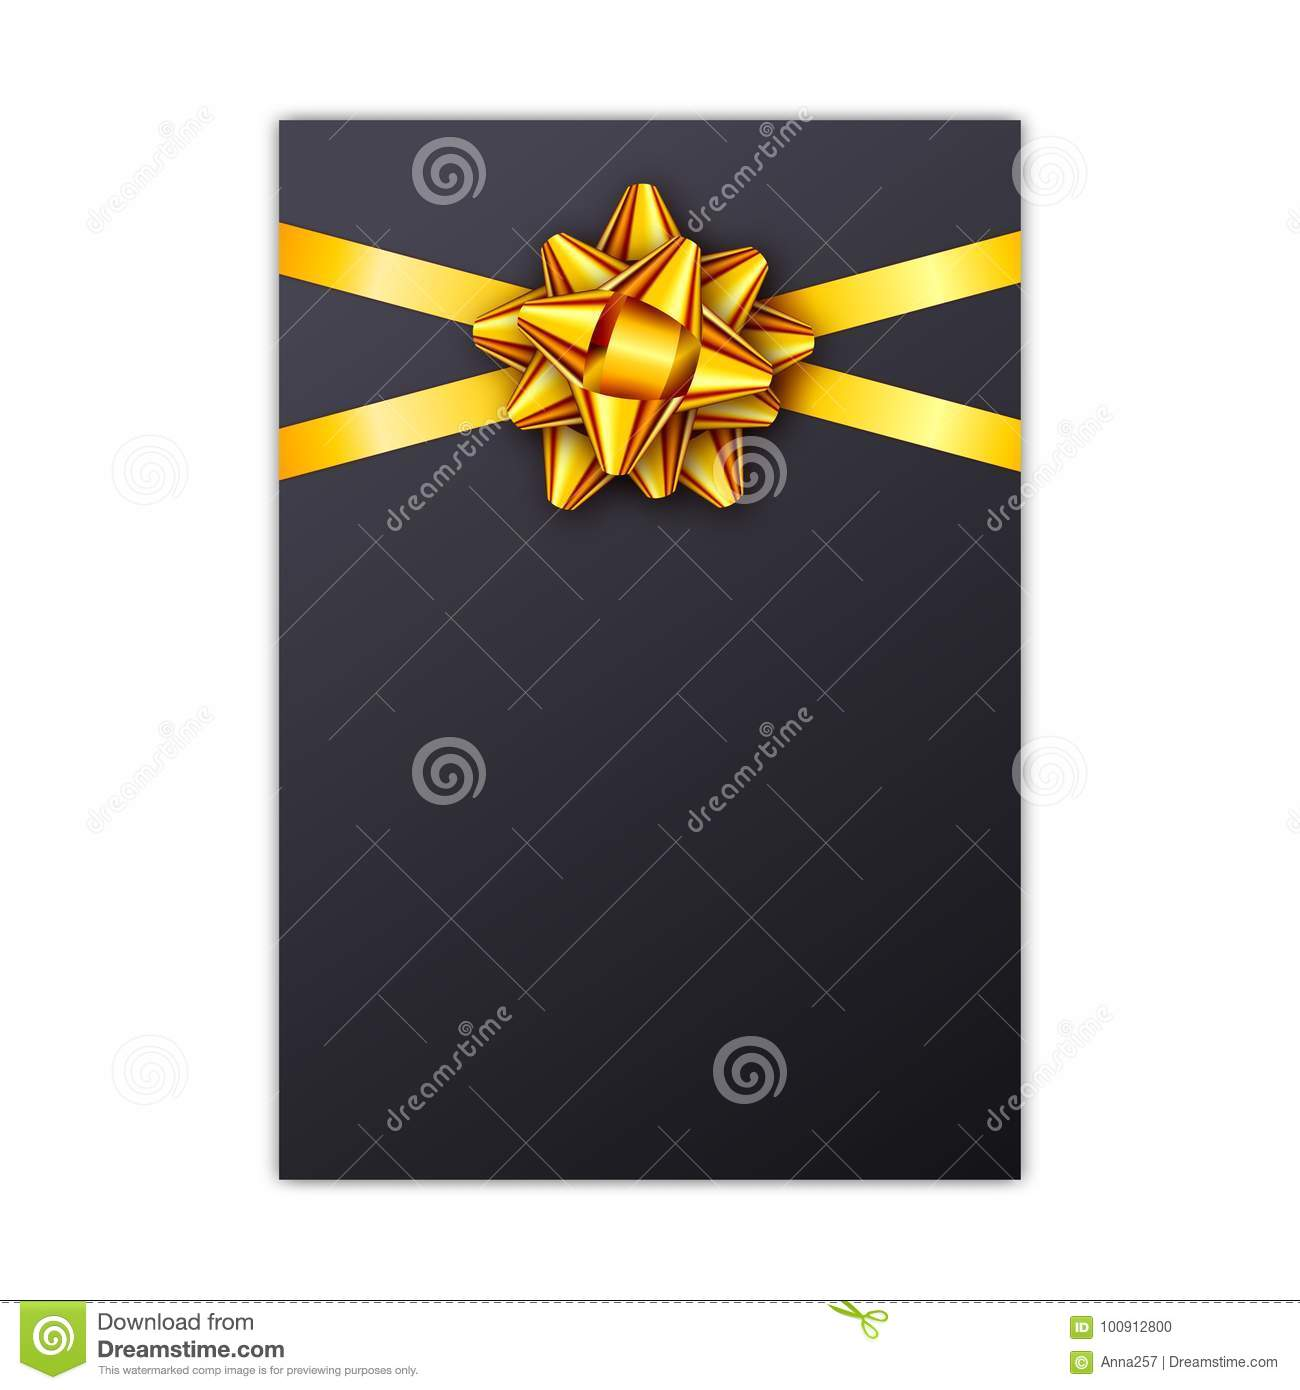 Black Holiday Gift Card With Golden Ribbon And Bow Template For A